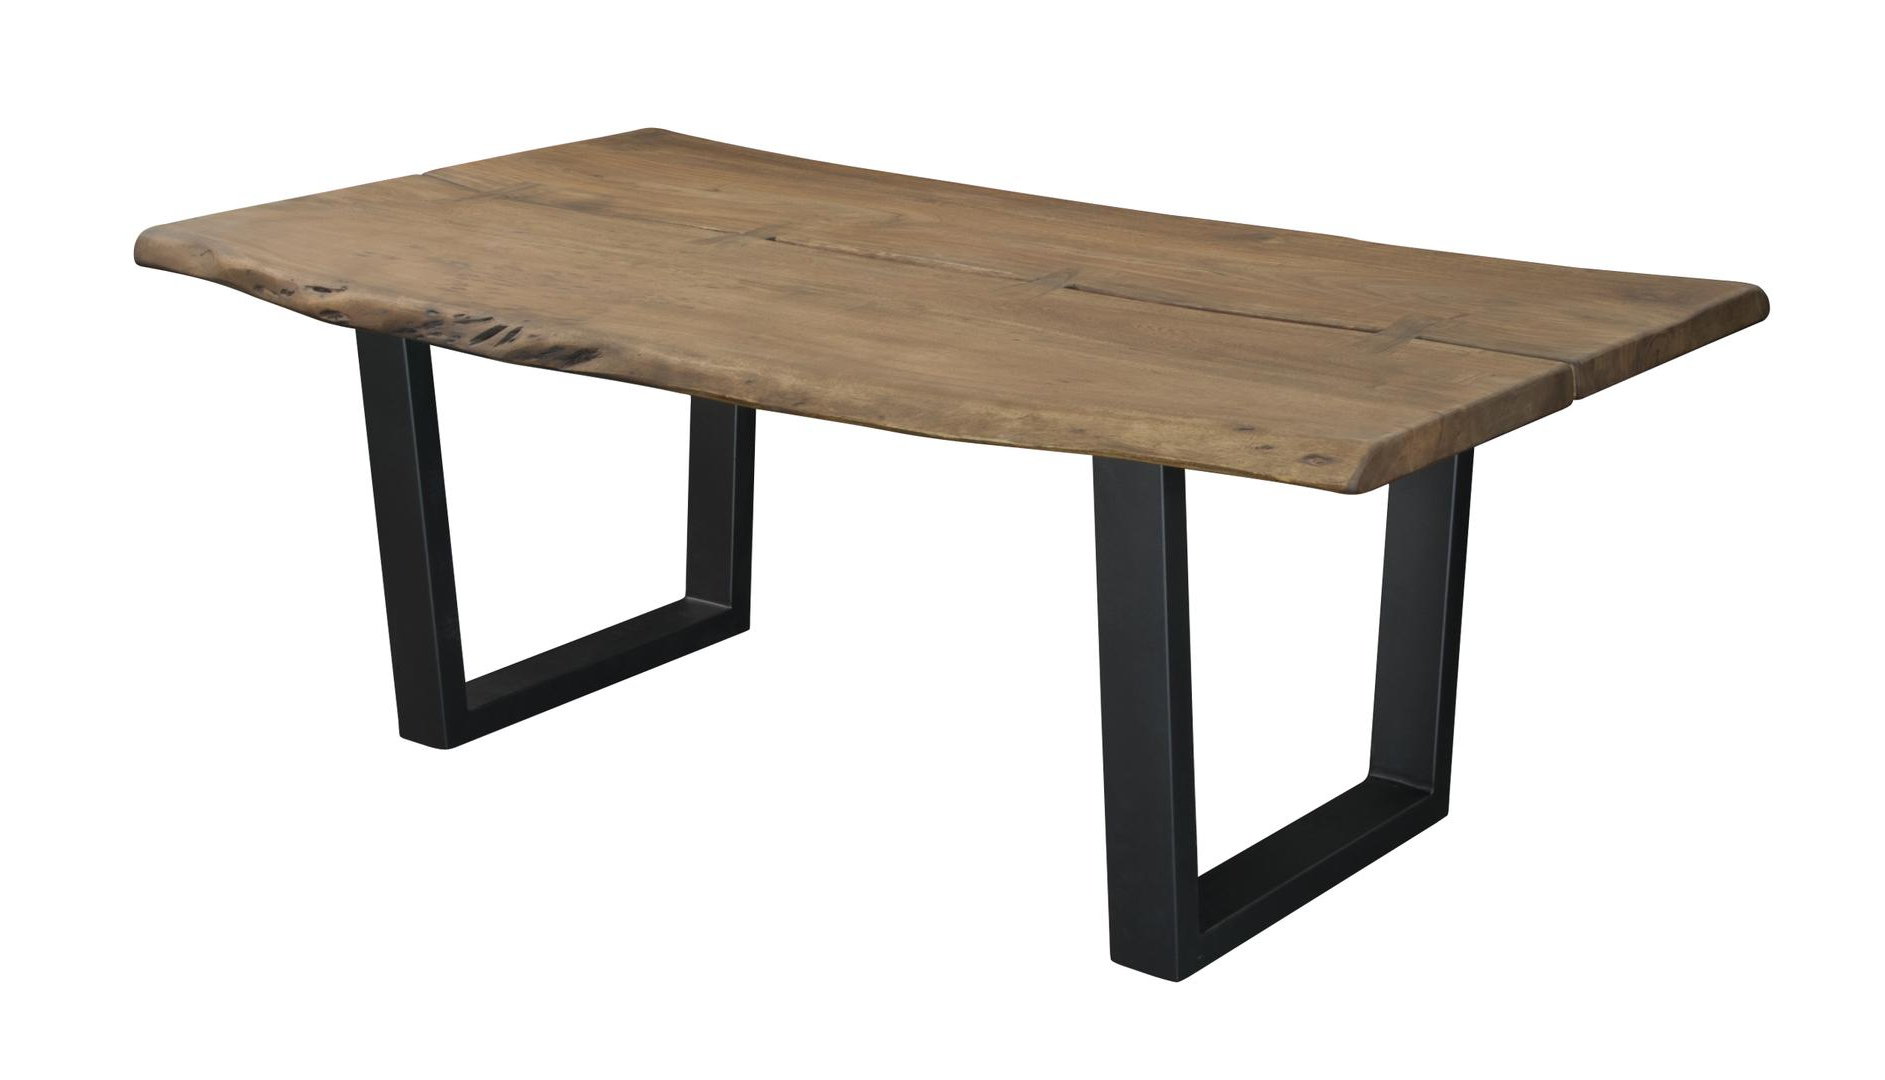 Acacia Top Dining Tables With Metal Legs For 2020 Coast To Coast  (View 3 of 25)